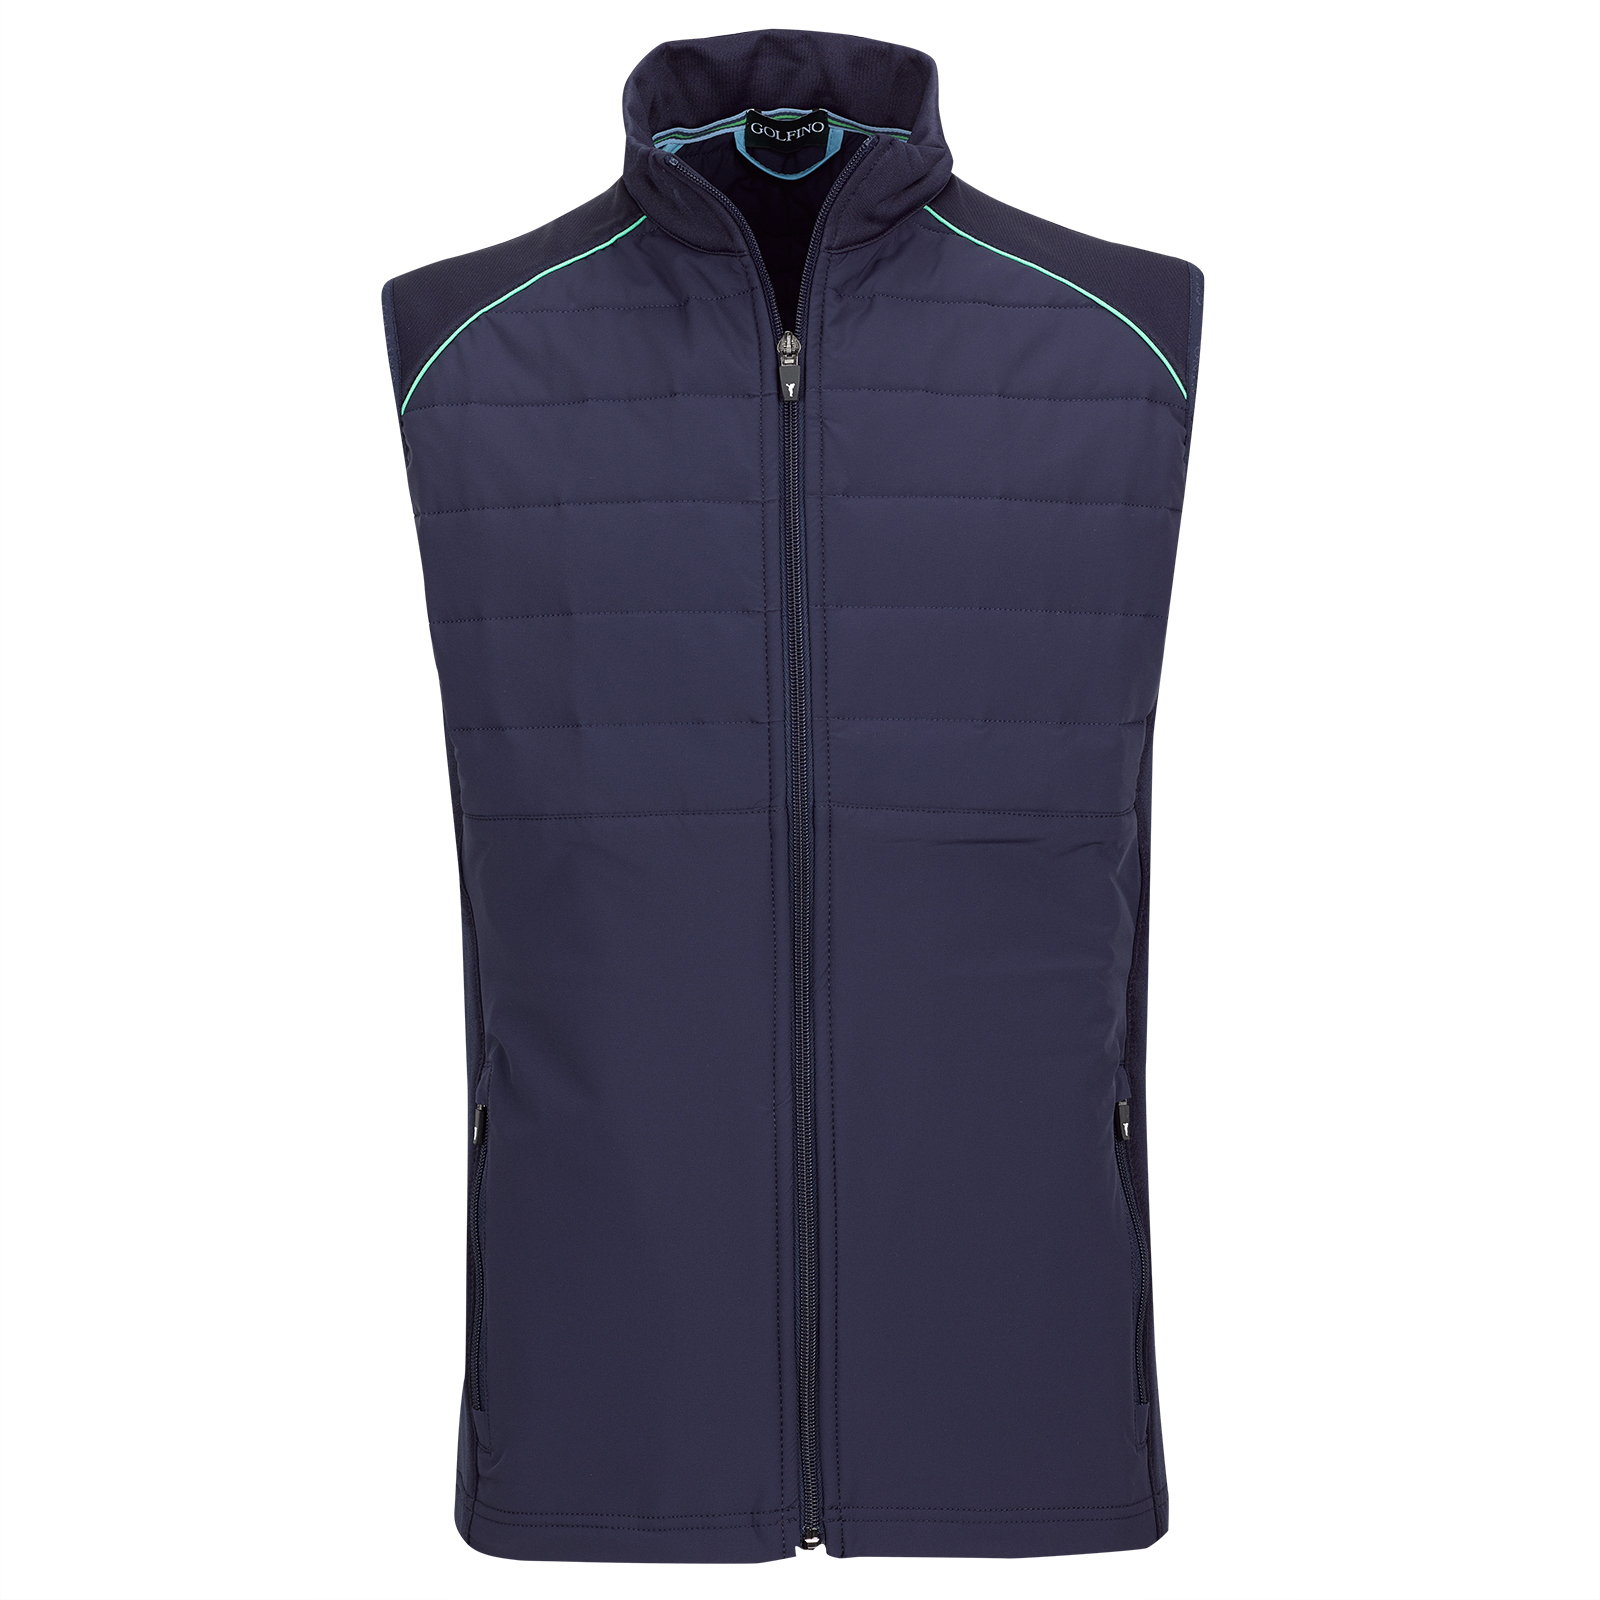 Gesteppte Performance Herren Stretch-Golfweste Cold Protection